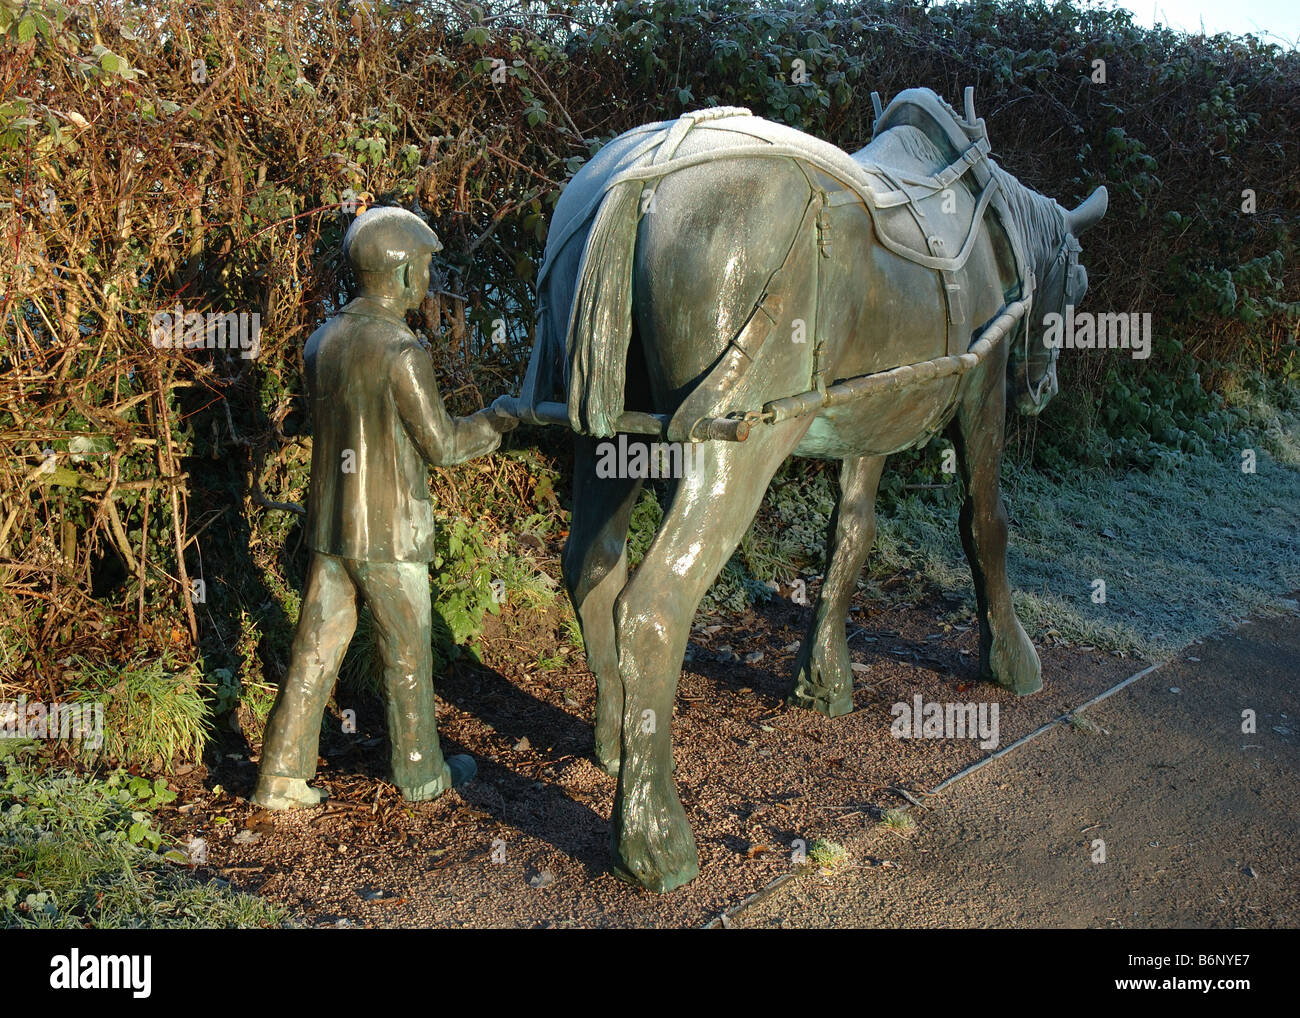 sculpture of boy and pony on the towpath of the Grand Union Canal, Foxton, Leicestershire, England, UK - Stock Image